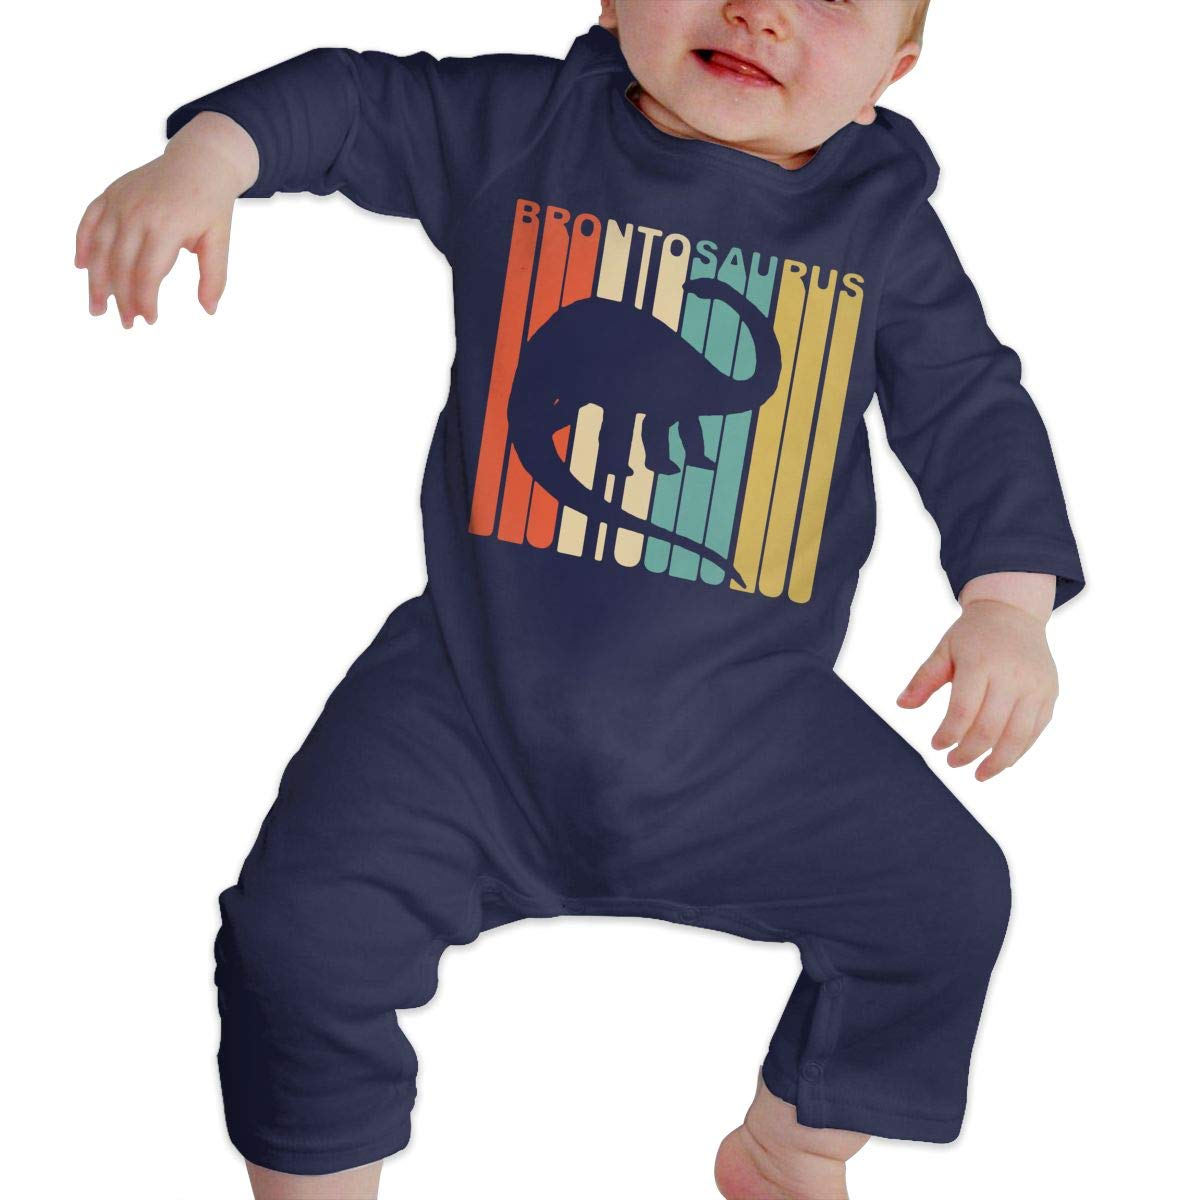 Mri-le1 Baby Boy Organic Coverall 1970s Style Dinosaur Baby Clothes